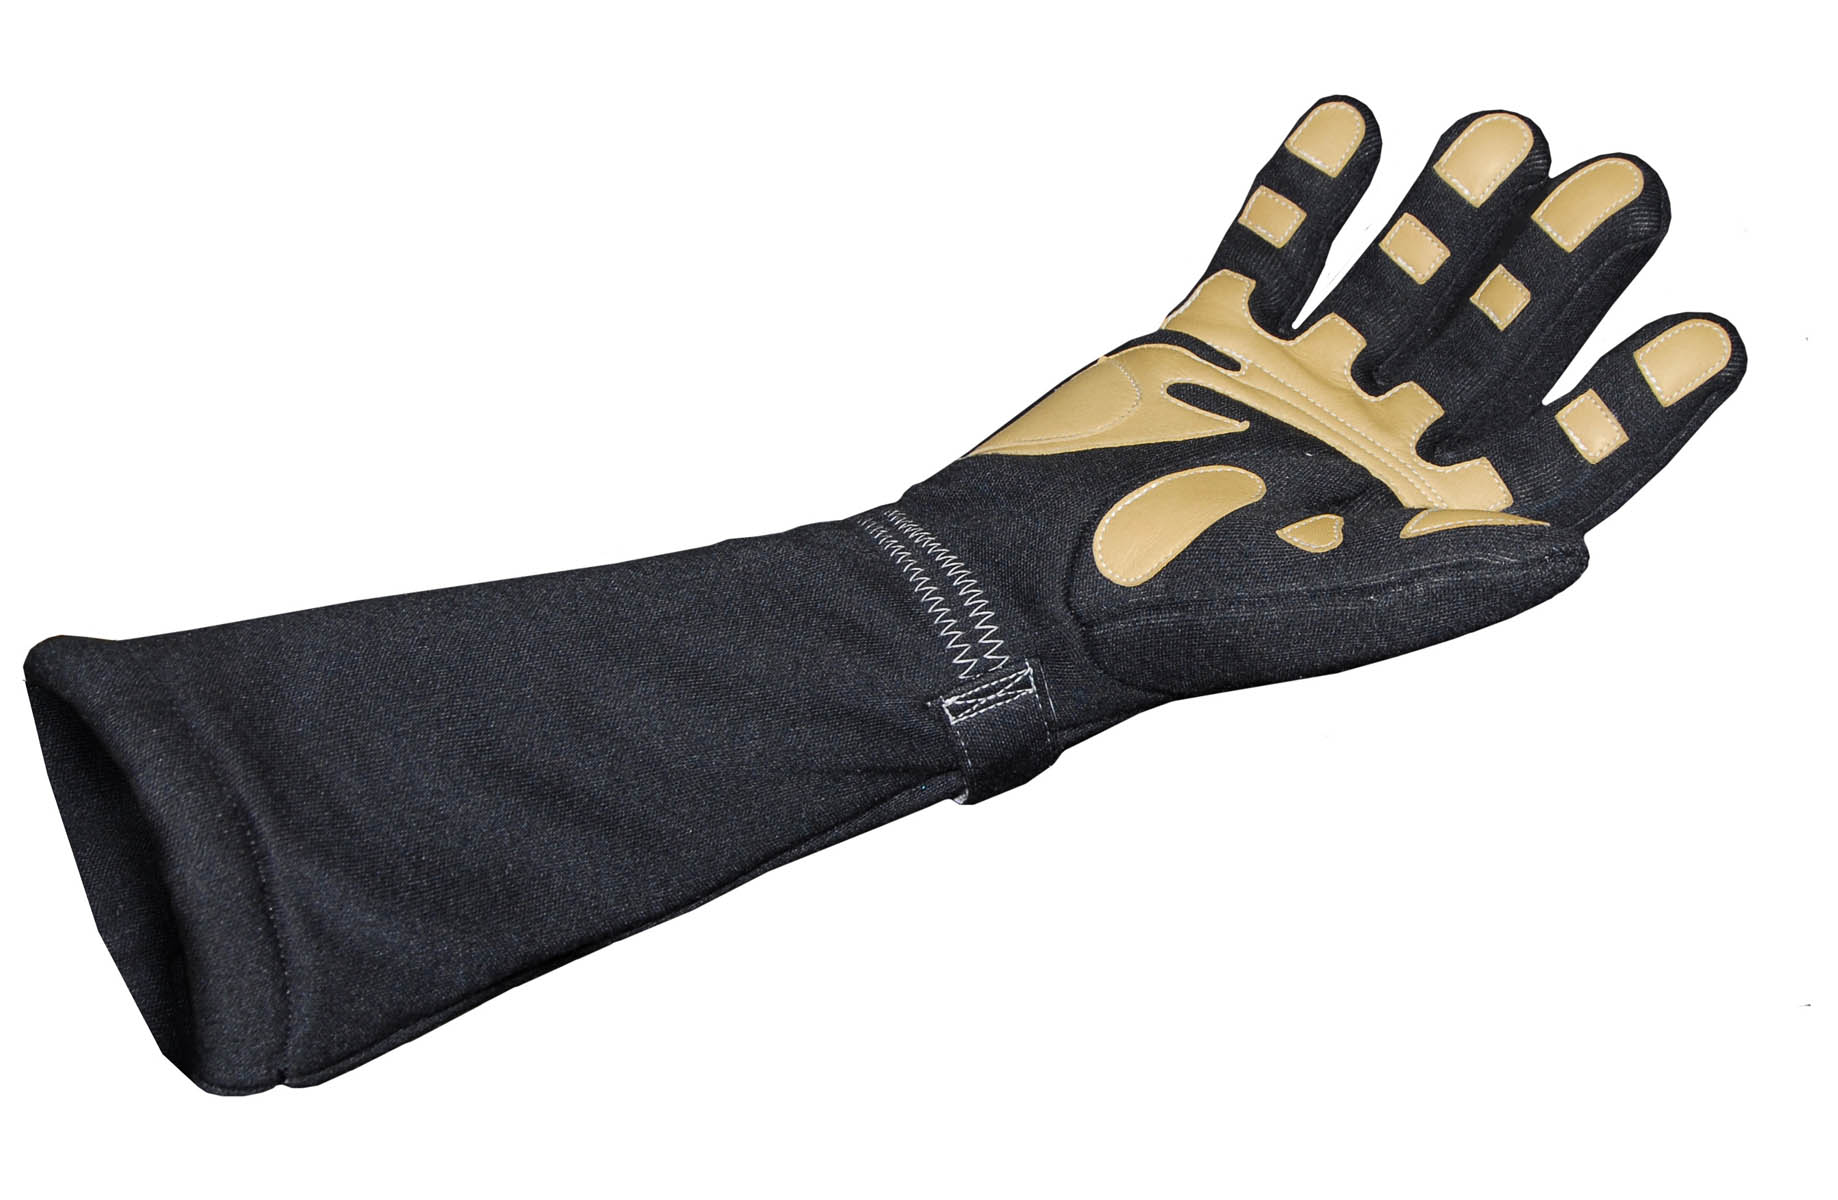 Stock Dragster glove